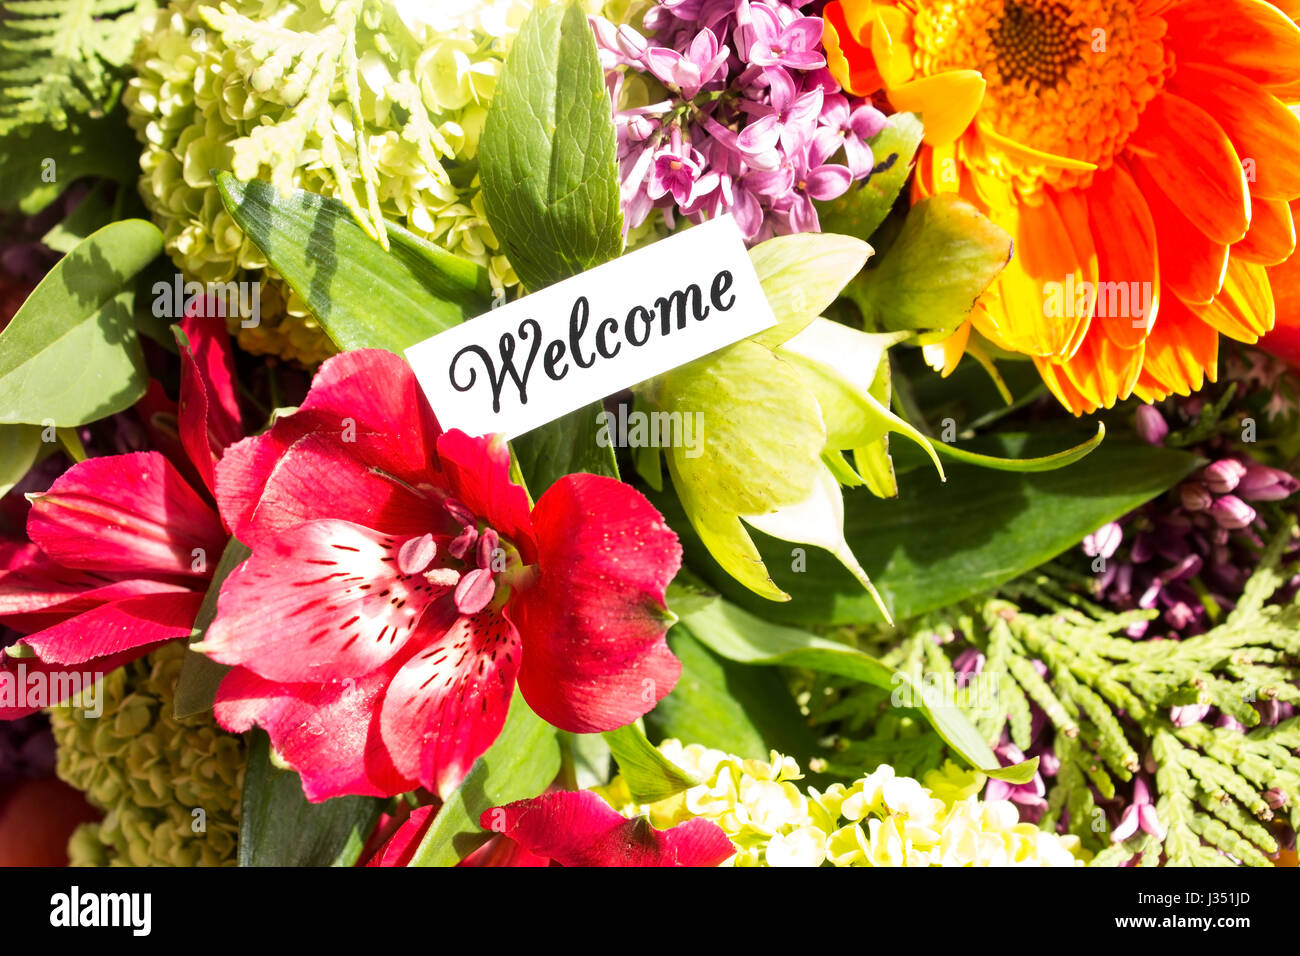 Autumn Love Hd Live Wallpaper Welcome Card With Bouquet Of Flowers Stock Photo